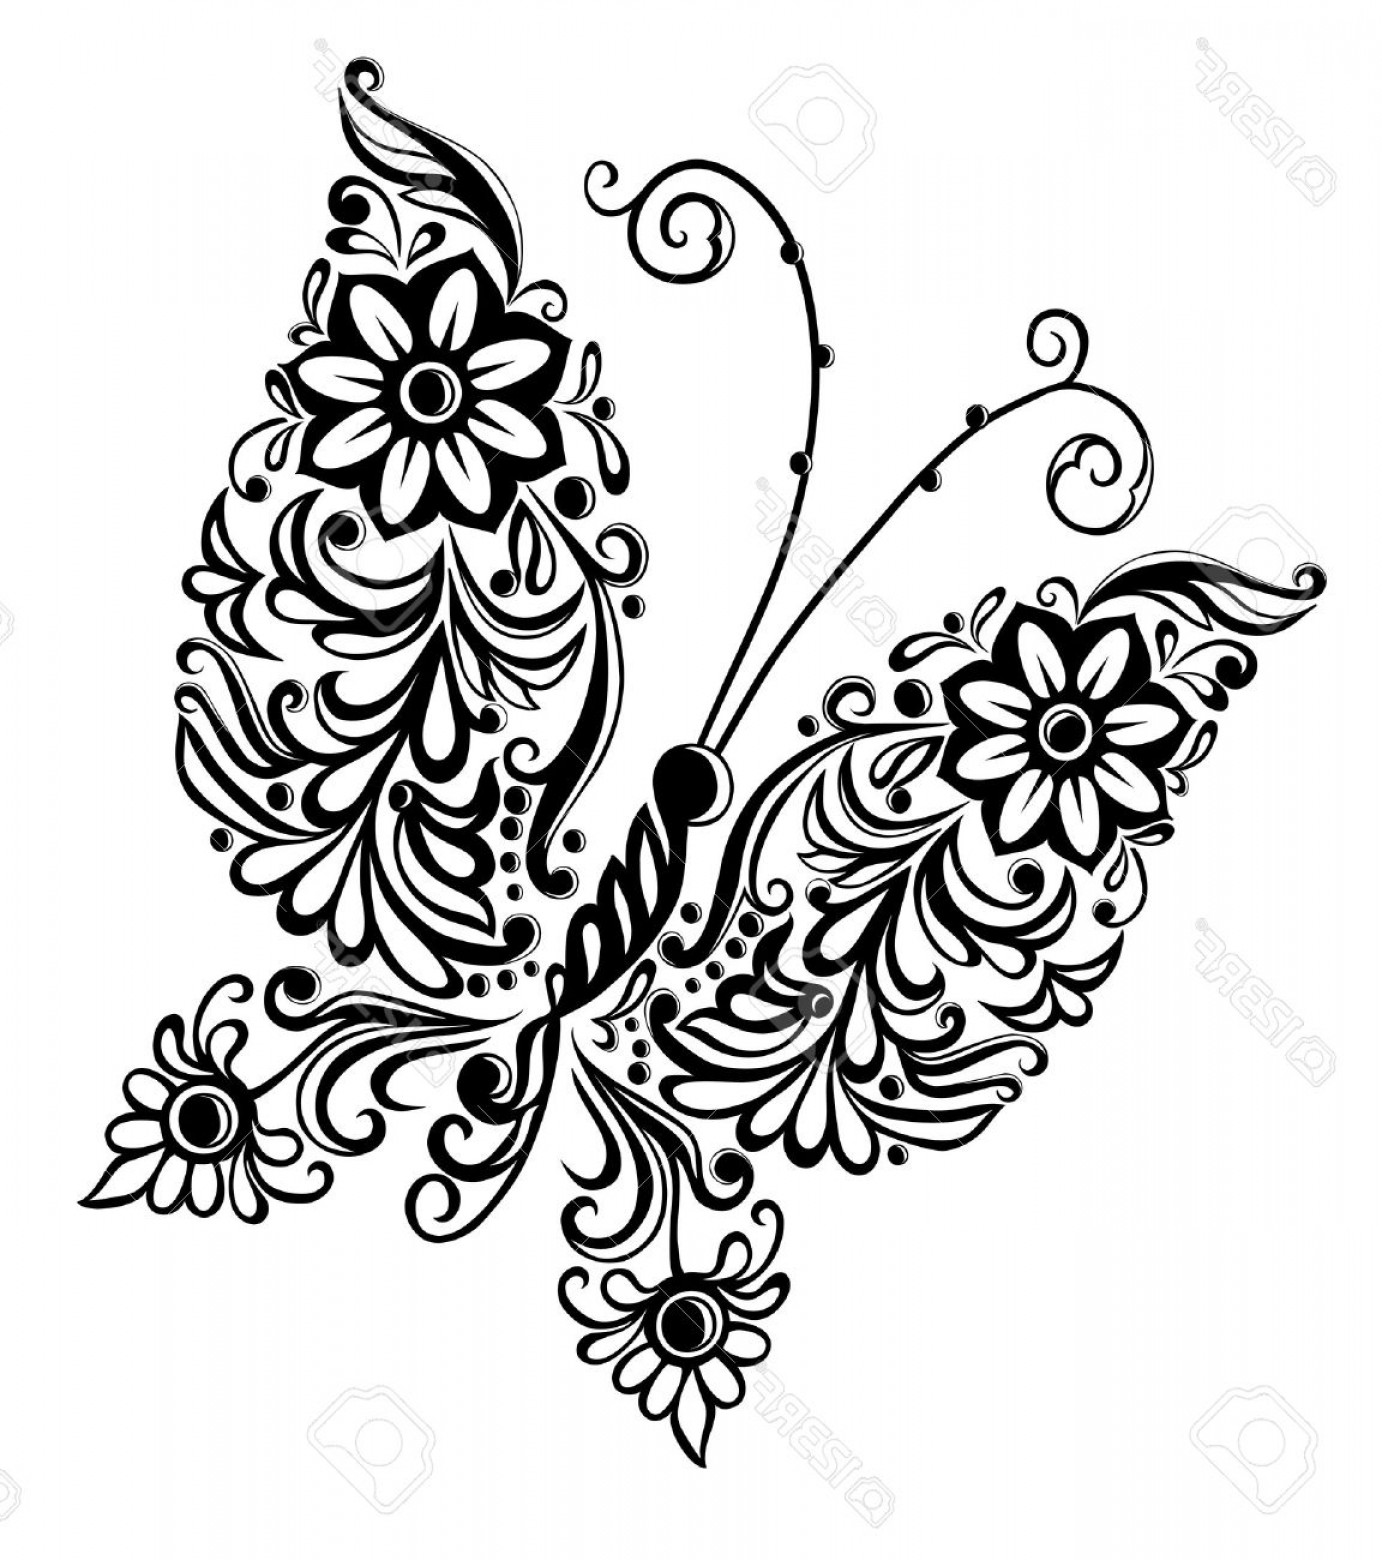 Butter Fly And Flower Vector Black And White: Photopainting Butterfly Swirl Abstract Element Design